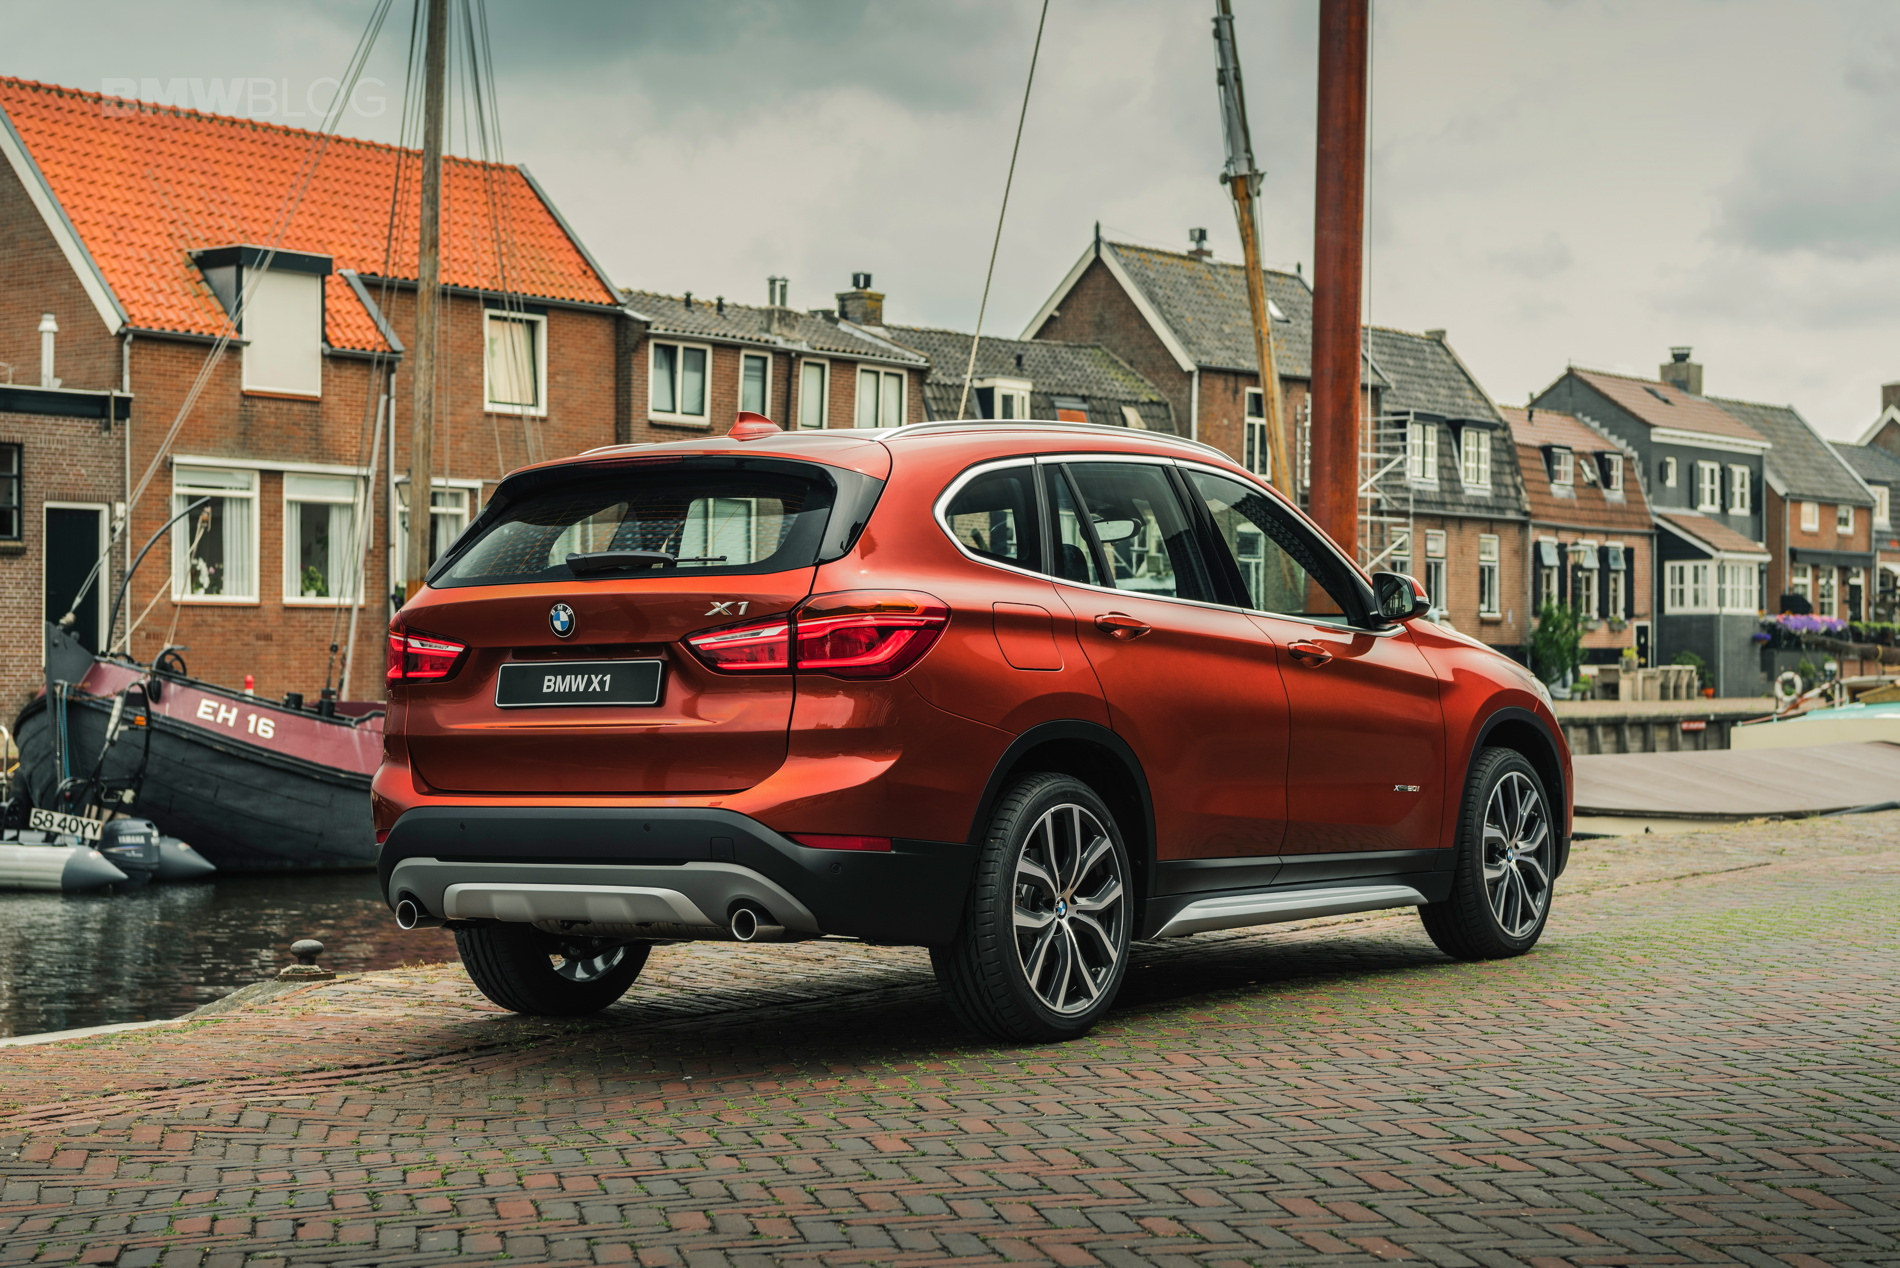 2017 BMW X1 Orange Edition: Special model in the Netherlands